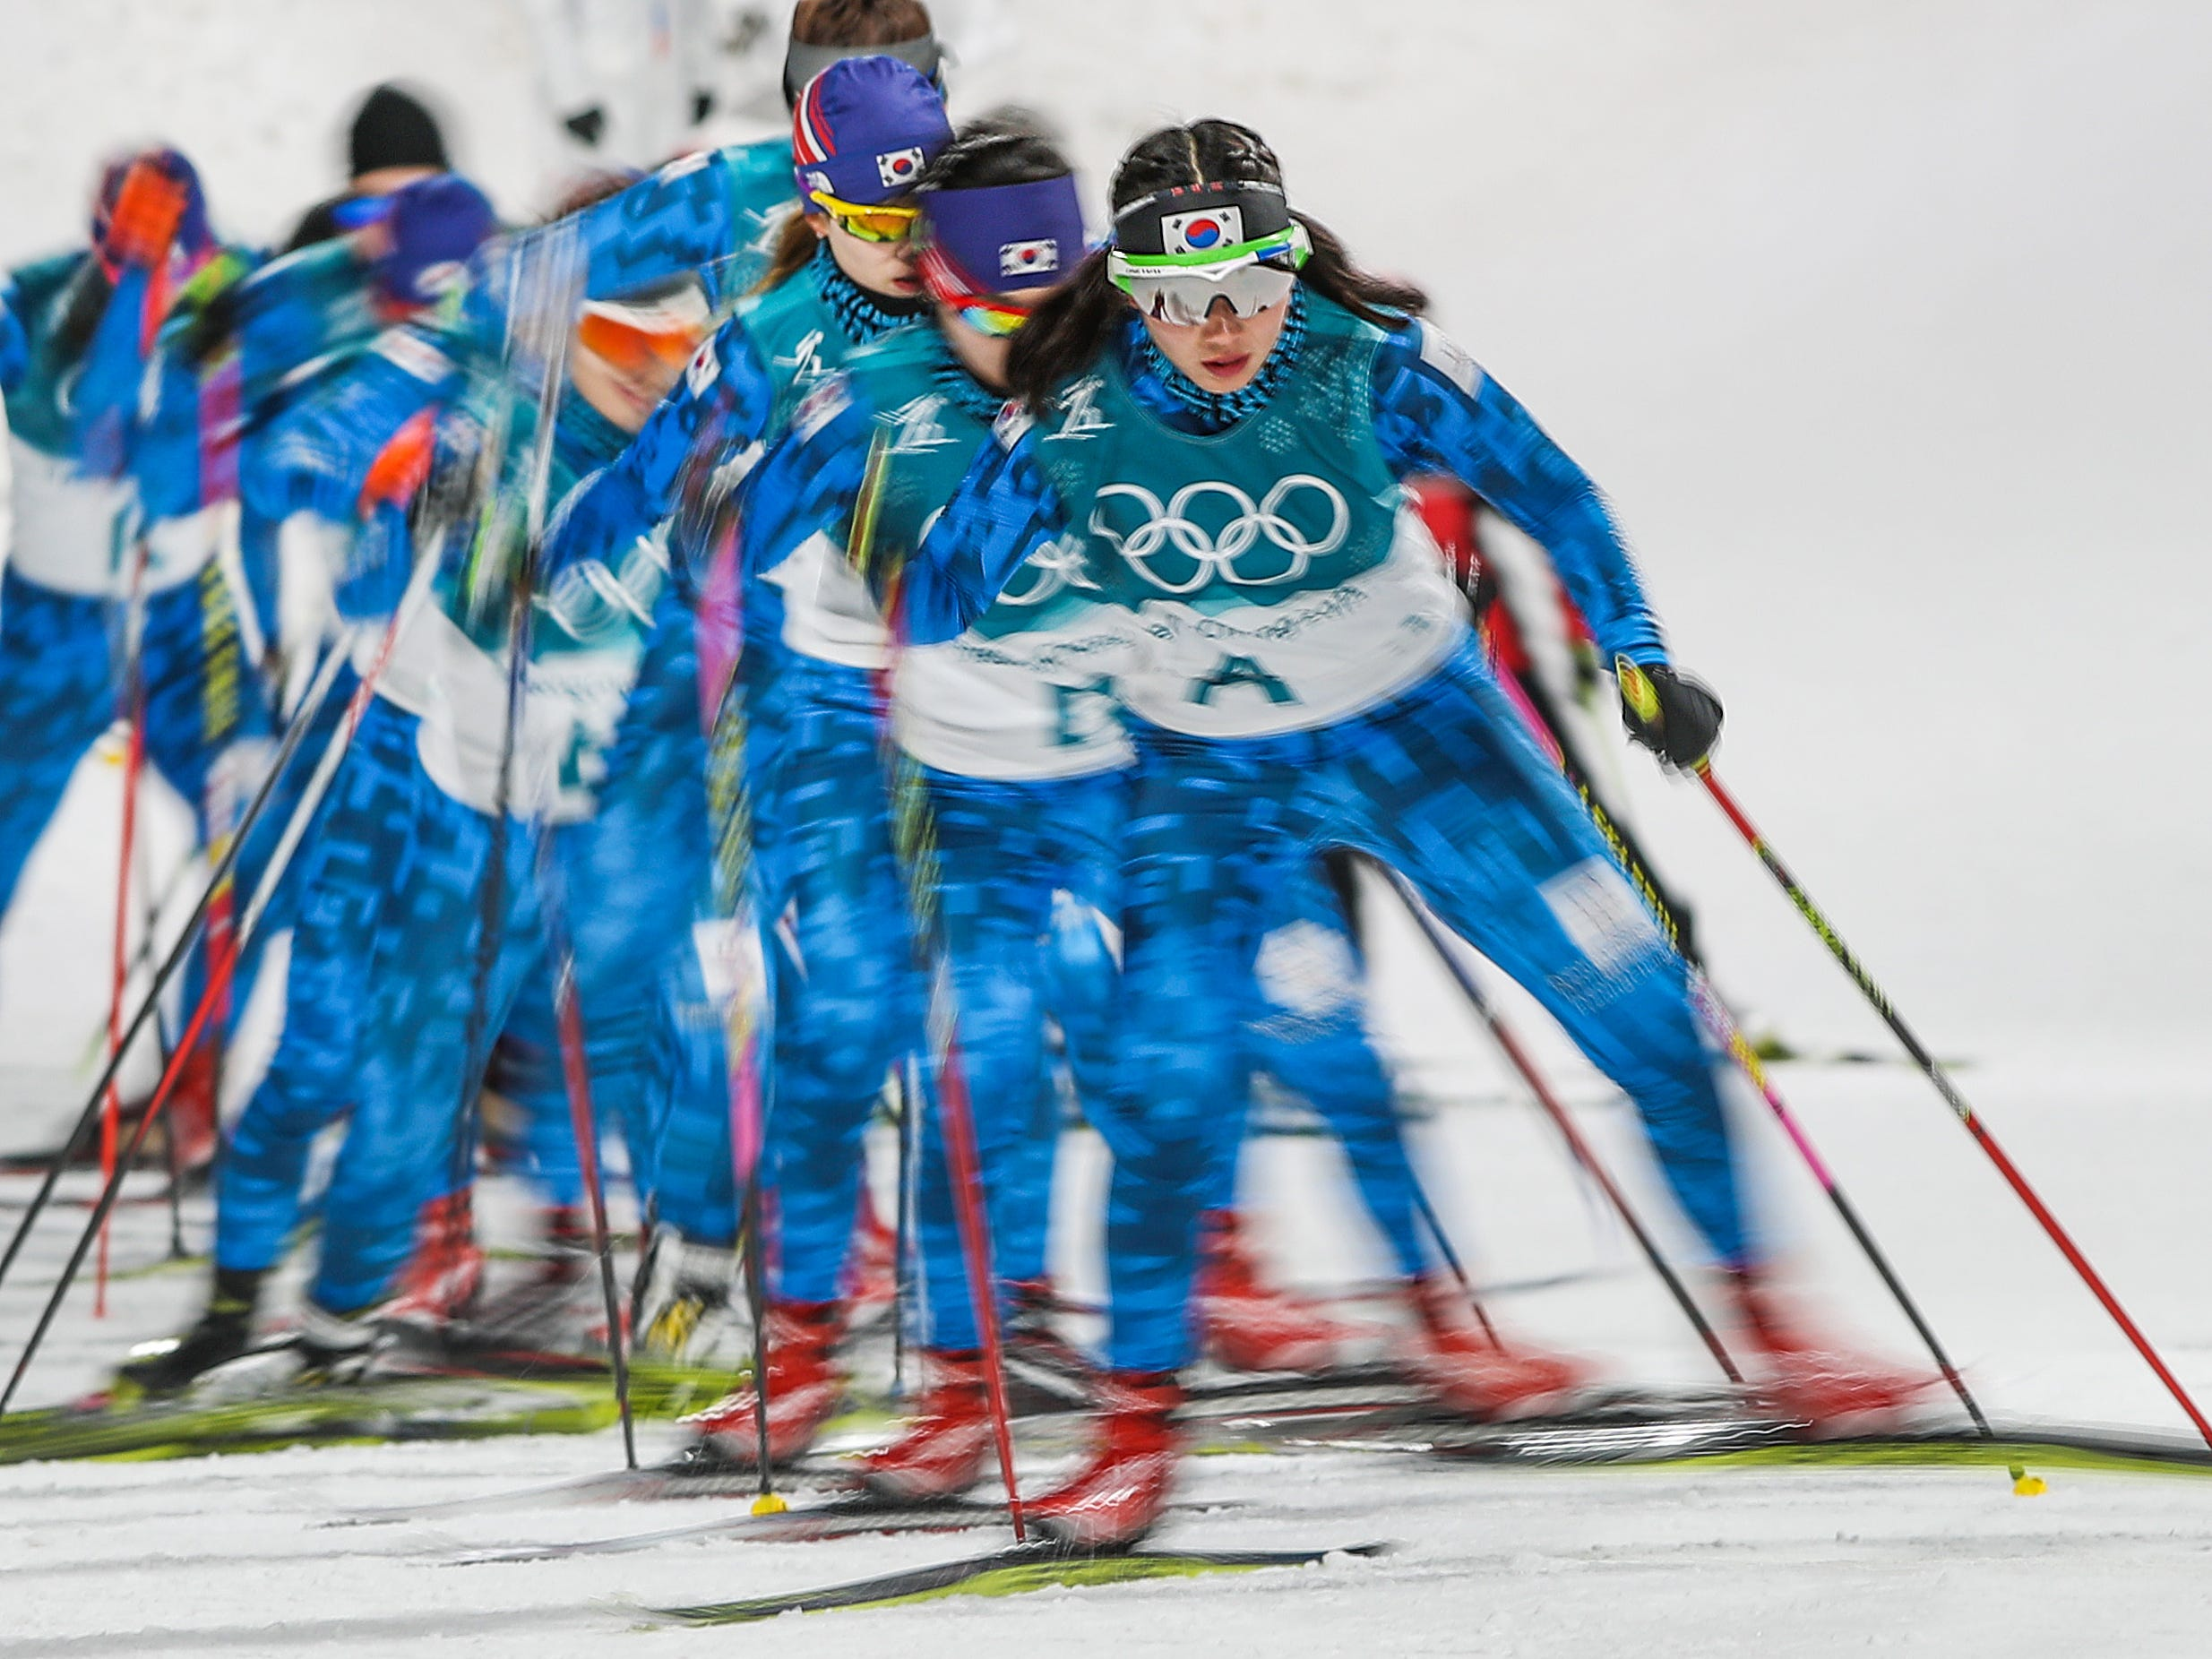 Feb 10, 2018; Pyeongchang, South Korea; A group of forerunners run the course before the start of the Women's 7.5km Sprint during the Pyeongchang 2018 Olympic Winter Games at Alpensia Biathlon Centre. Mandatory Credit: Matt Kryger-USA TODAY Sports